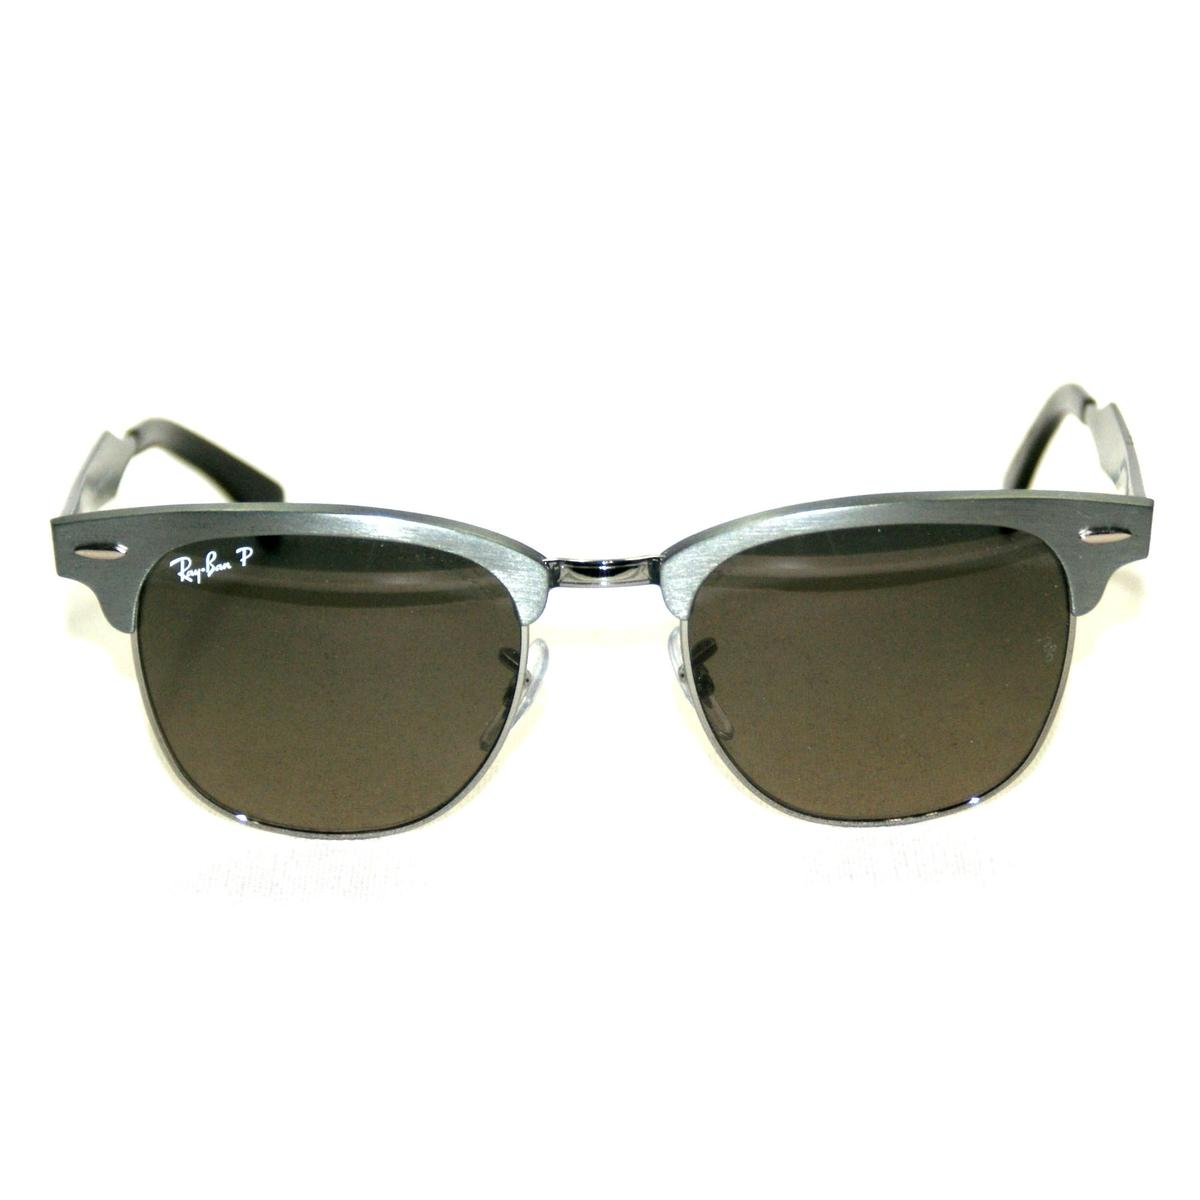 polaroid sunglasses wki2  polaroid sunglasses